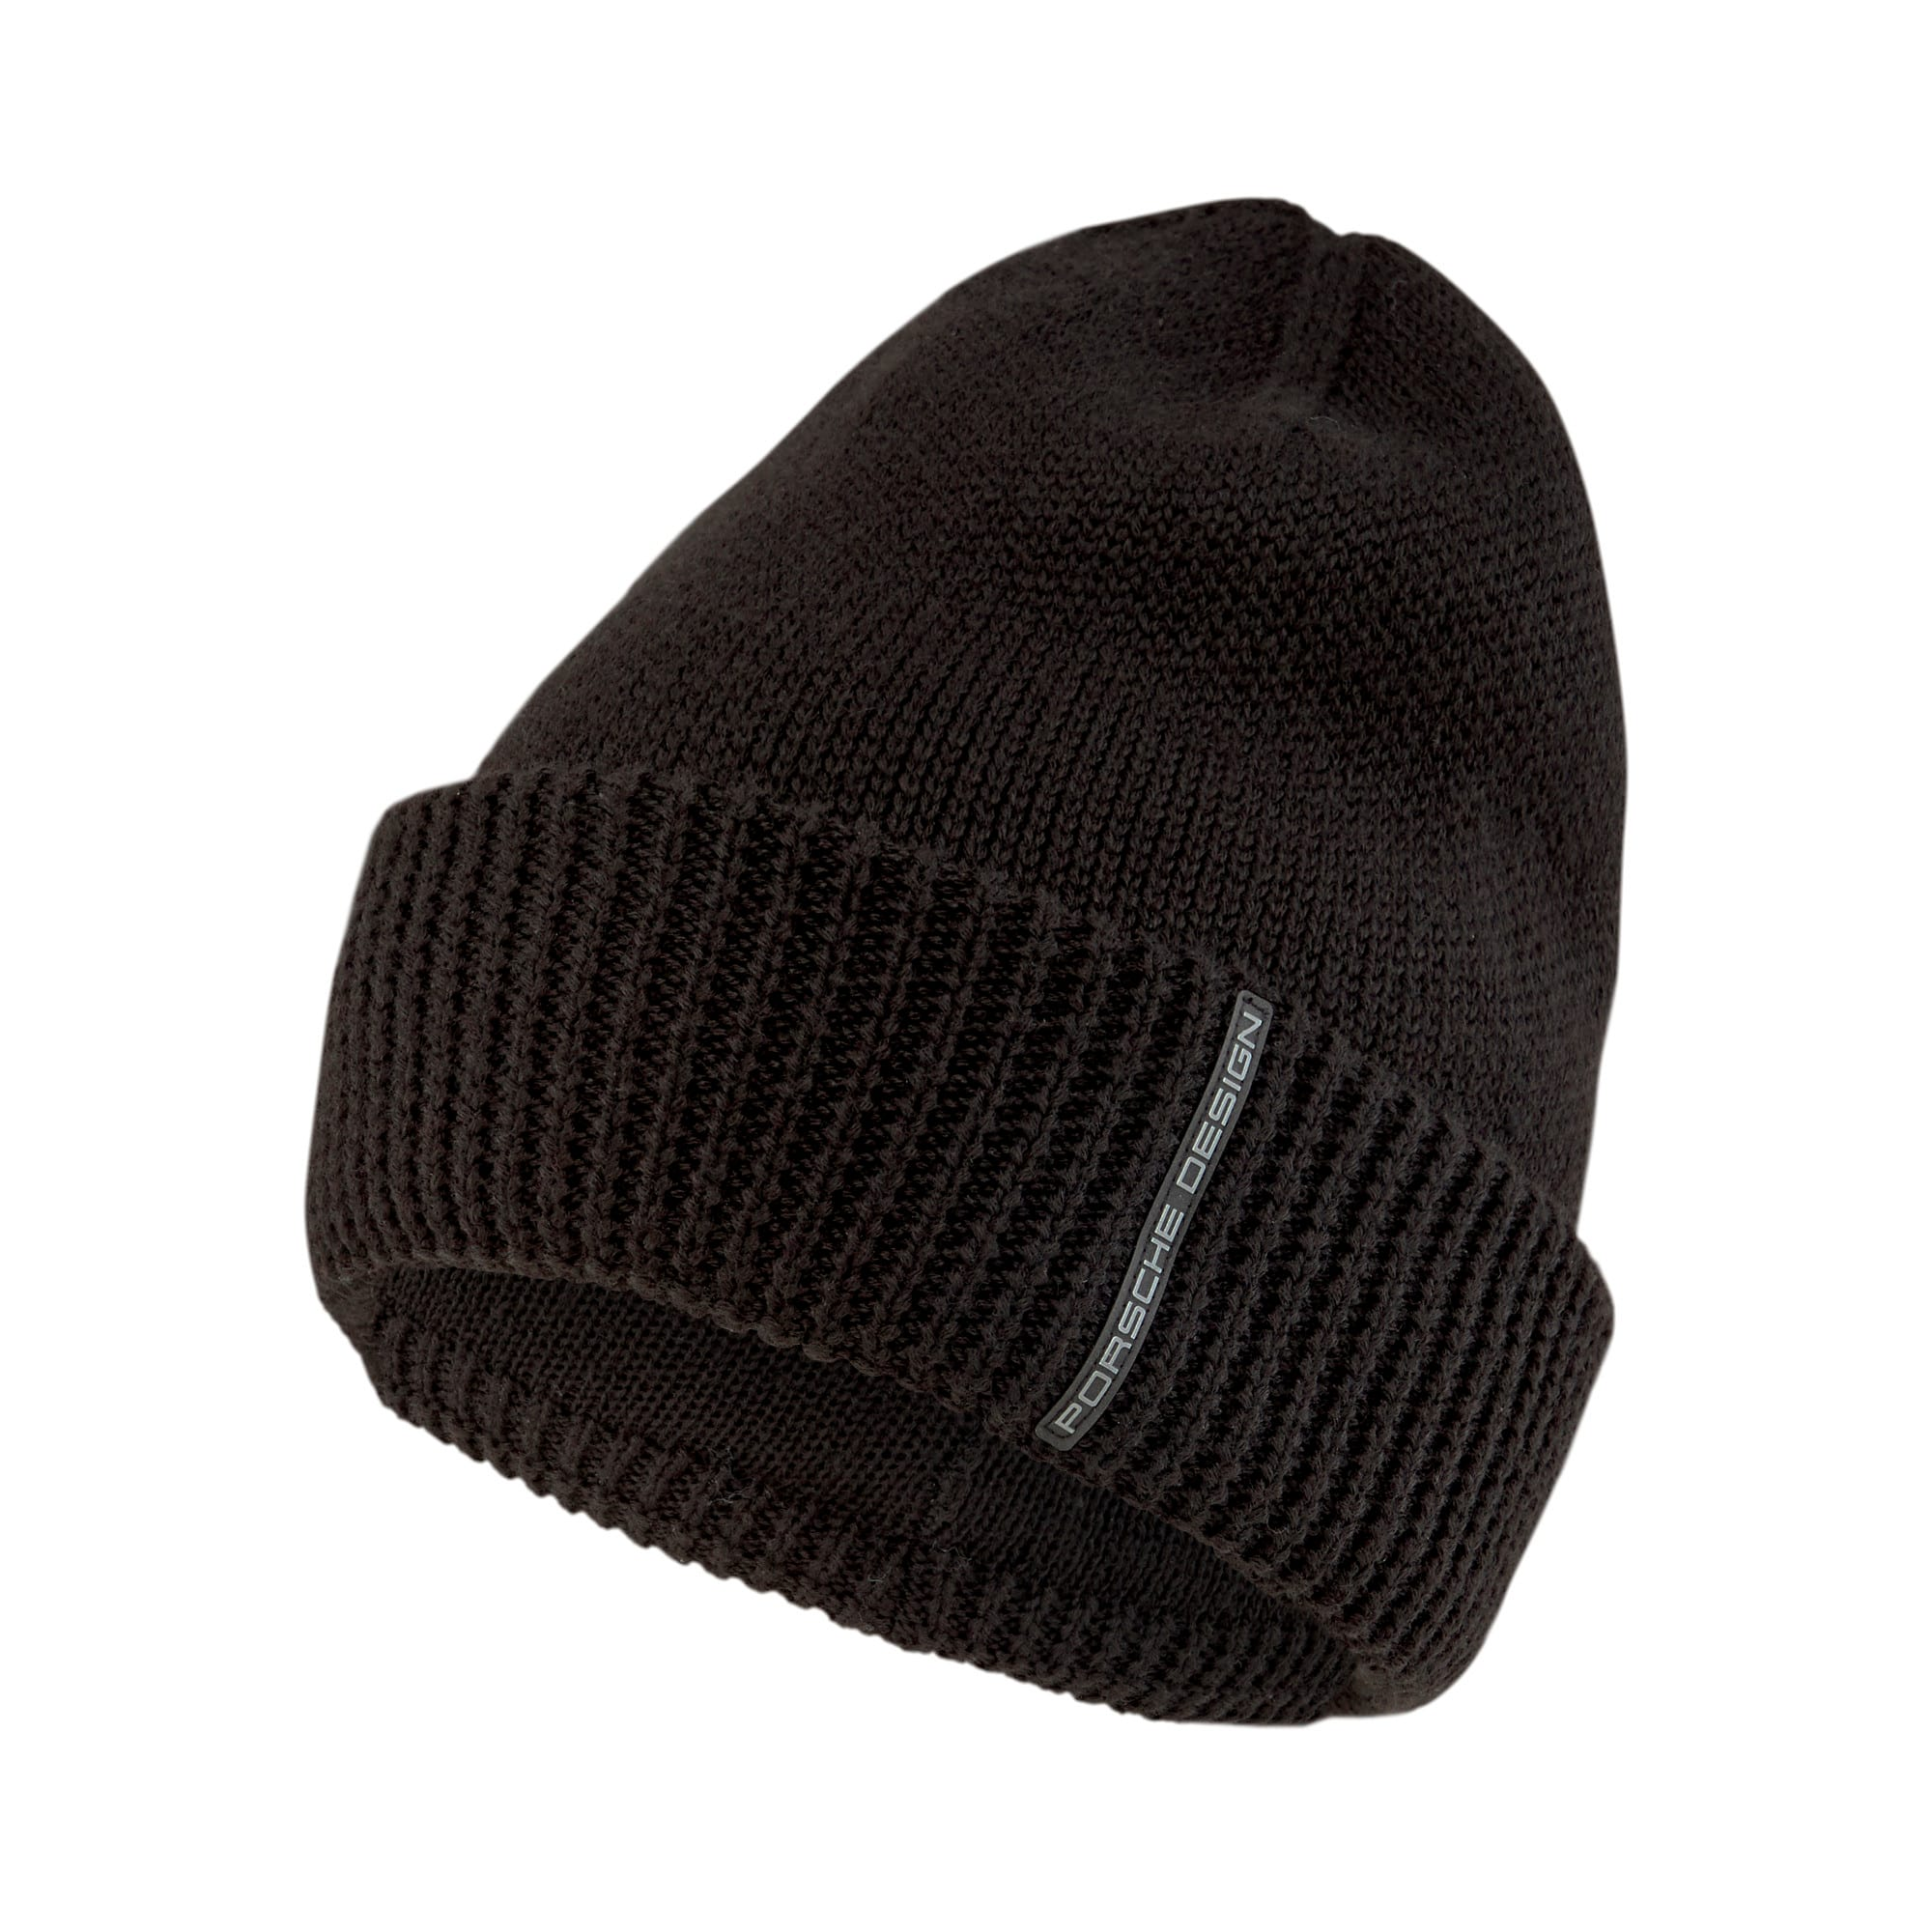 Thumbnail 1 of Porsche Design Gestrickte Beanie, Puma Black, medium